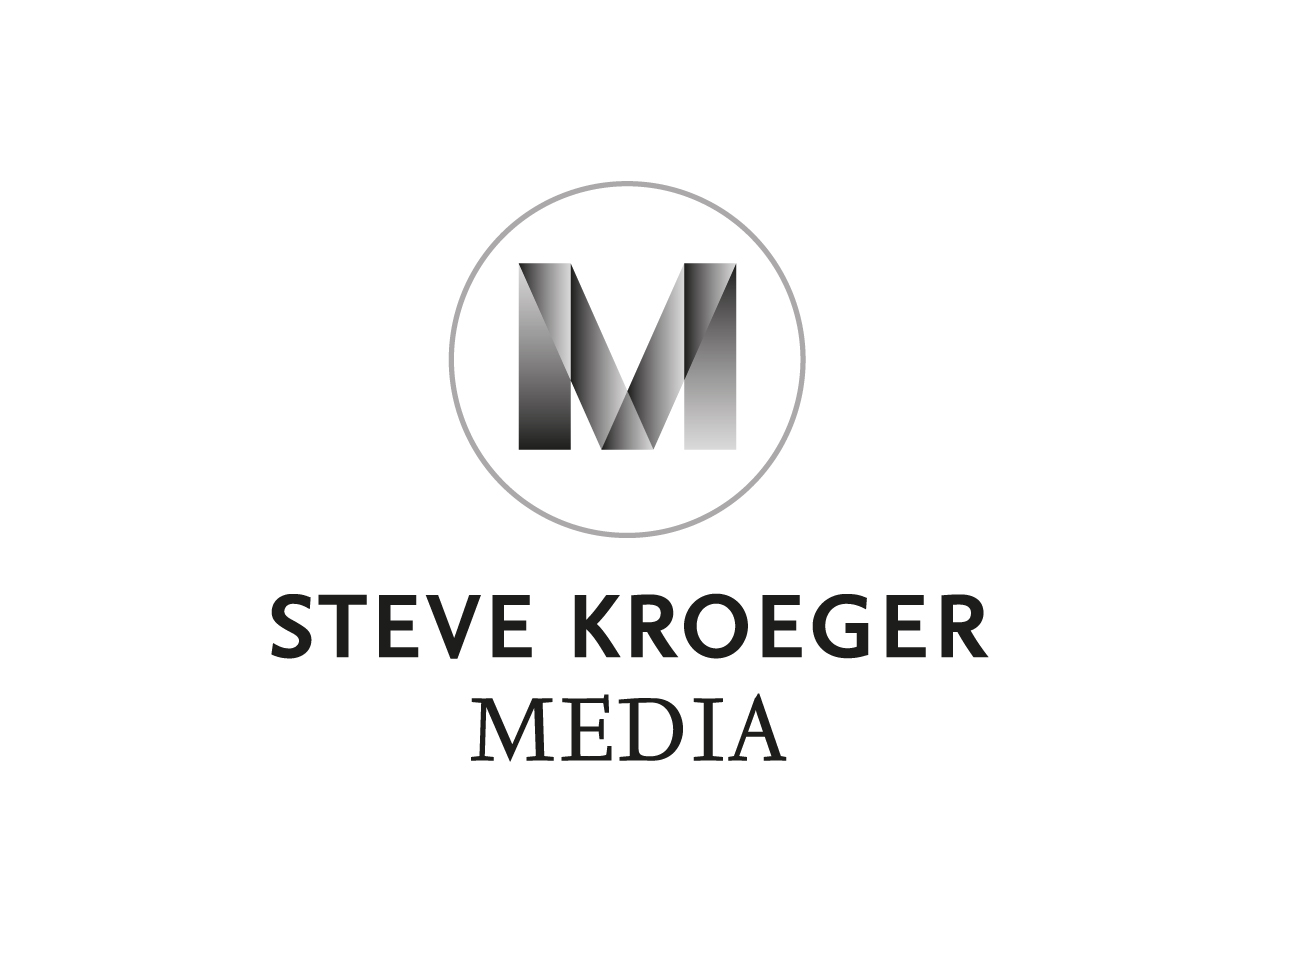 martin_zech_design_corporate_design_steve-kroeger-media_logo